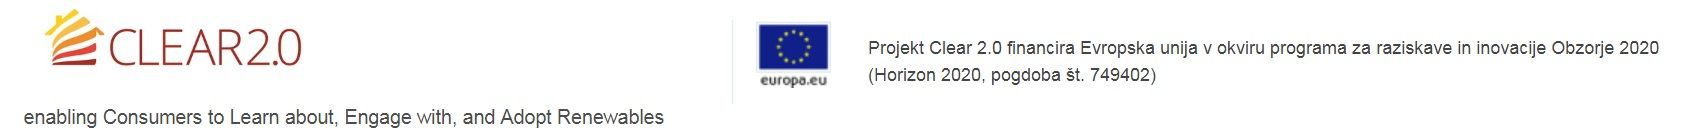 LOGO CLEAR IN EU-TA JE PRAVI